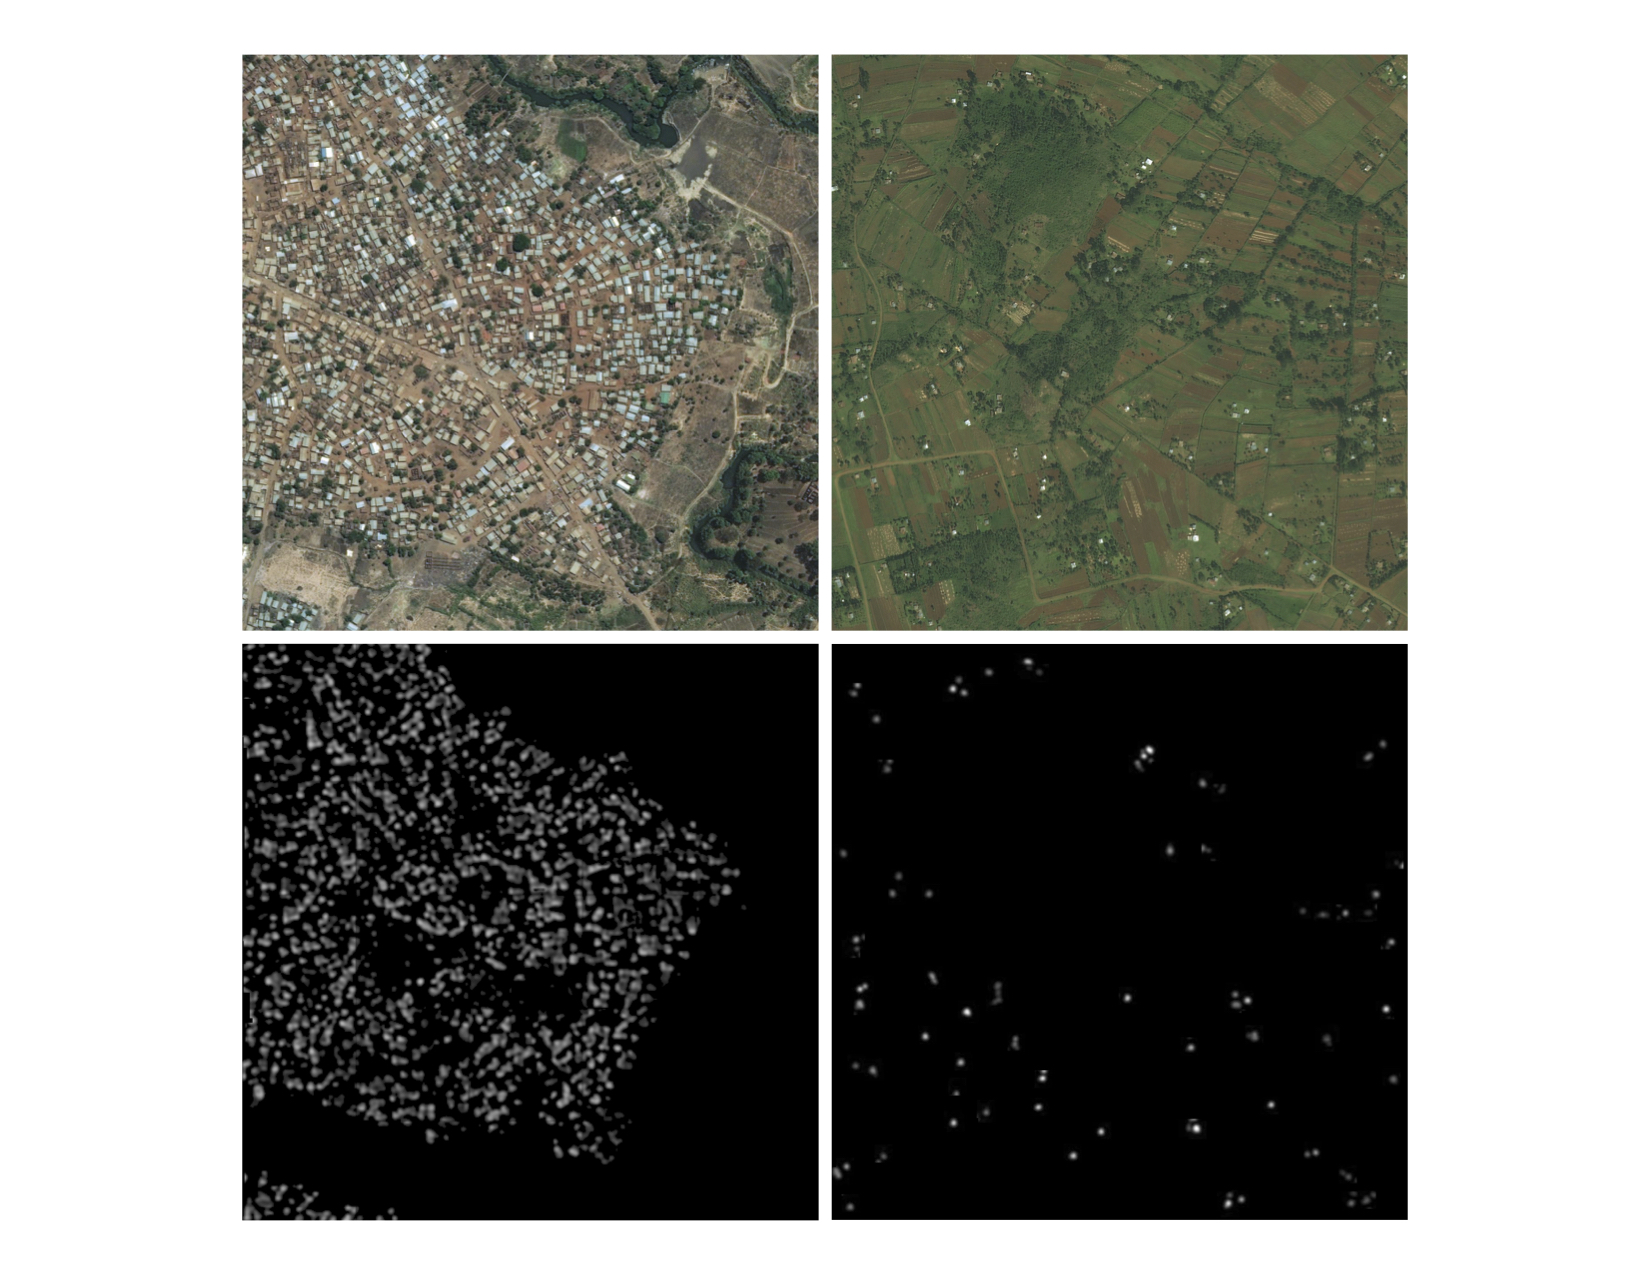 Display of both urban and rural populations on the top from DigitalGlobe imagery with Facebook's analysis underneath.